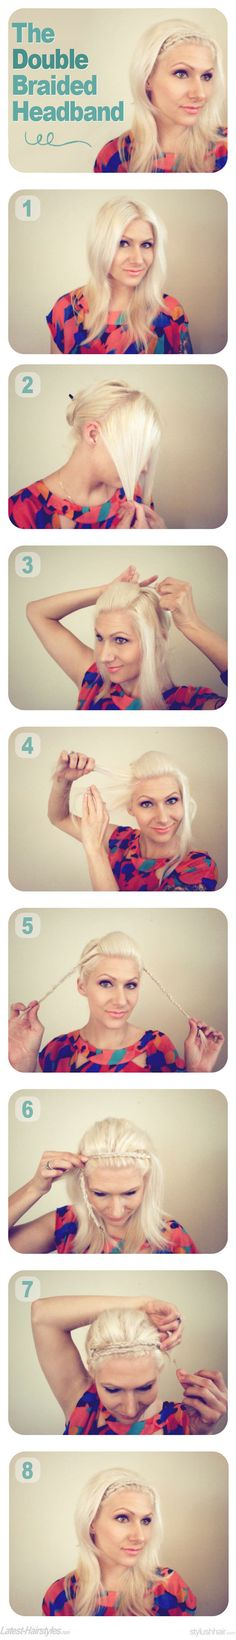 double braid headband tutorial.  :)